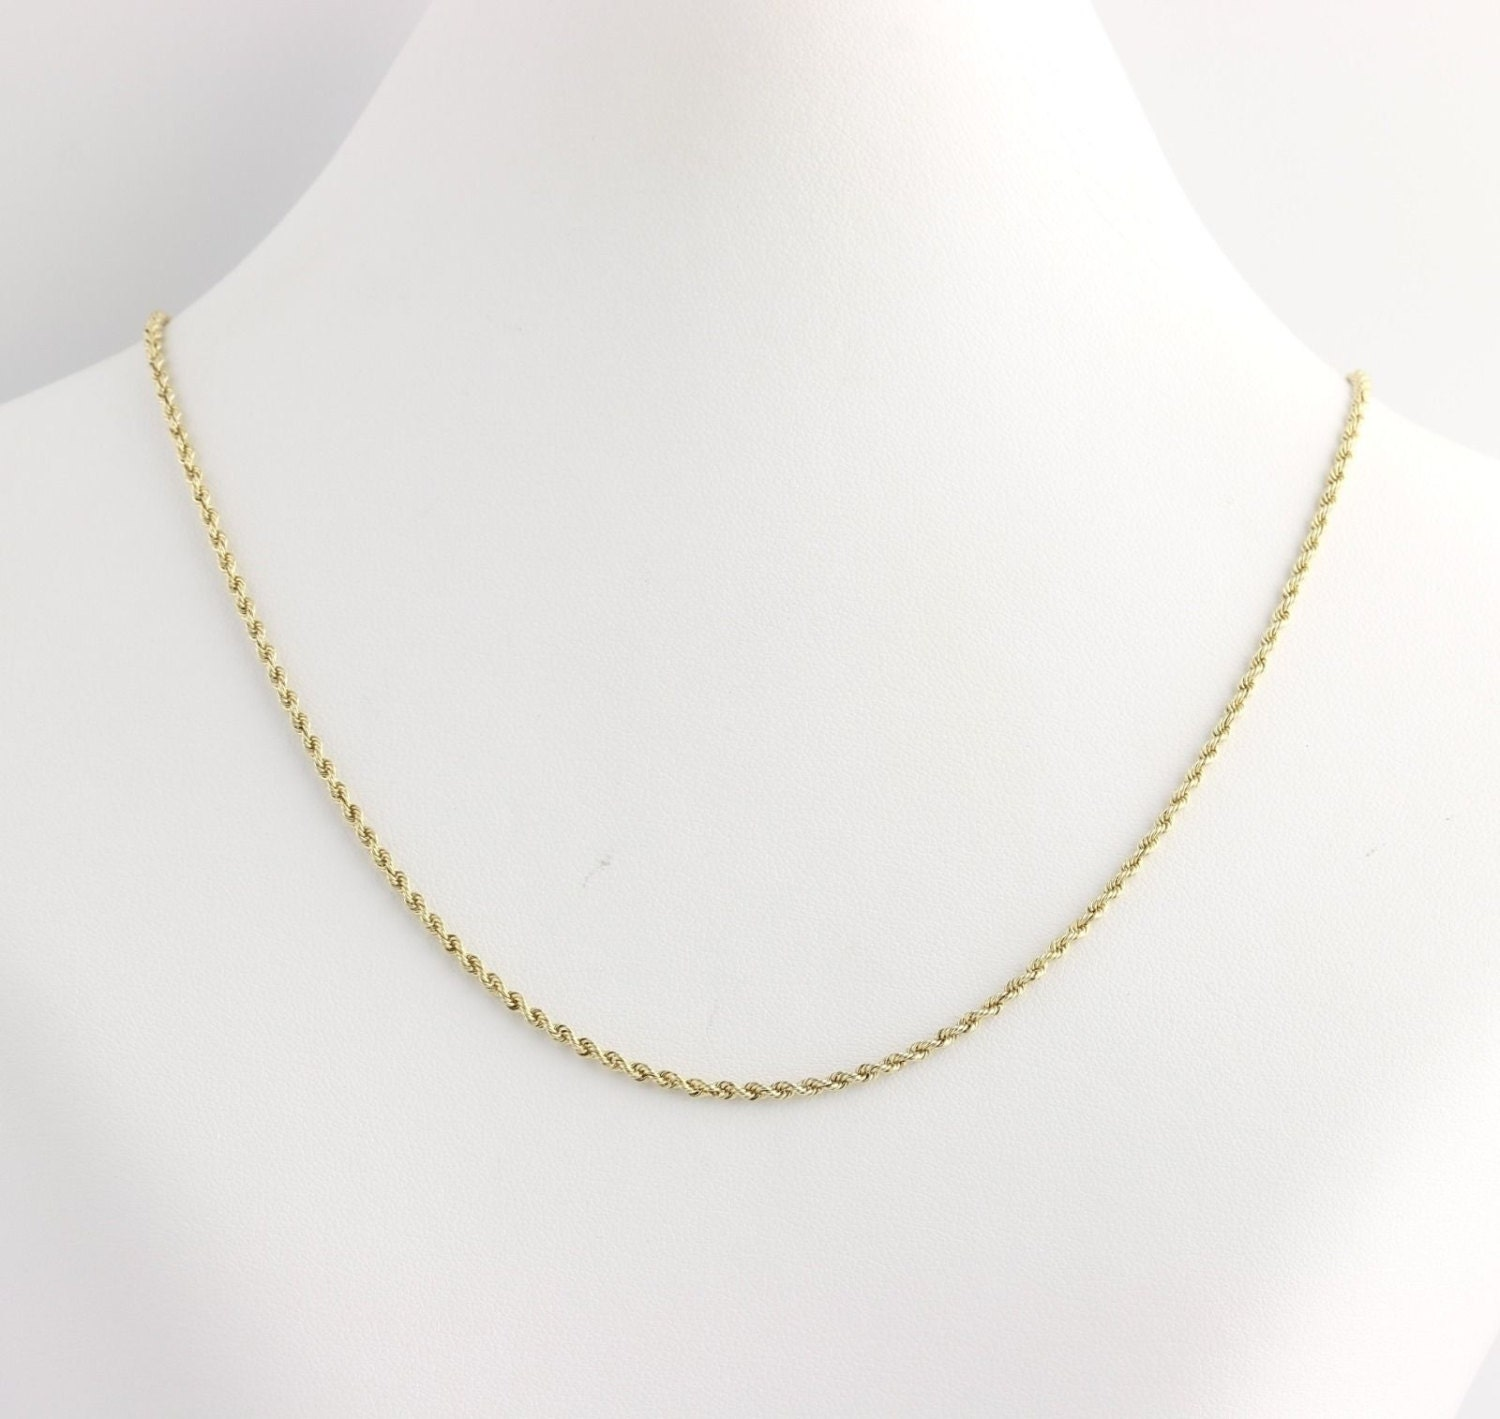 rope chain necklace 19 14k yellow gold s